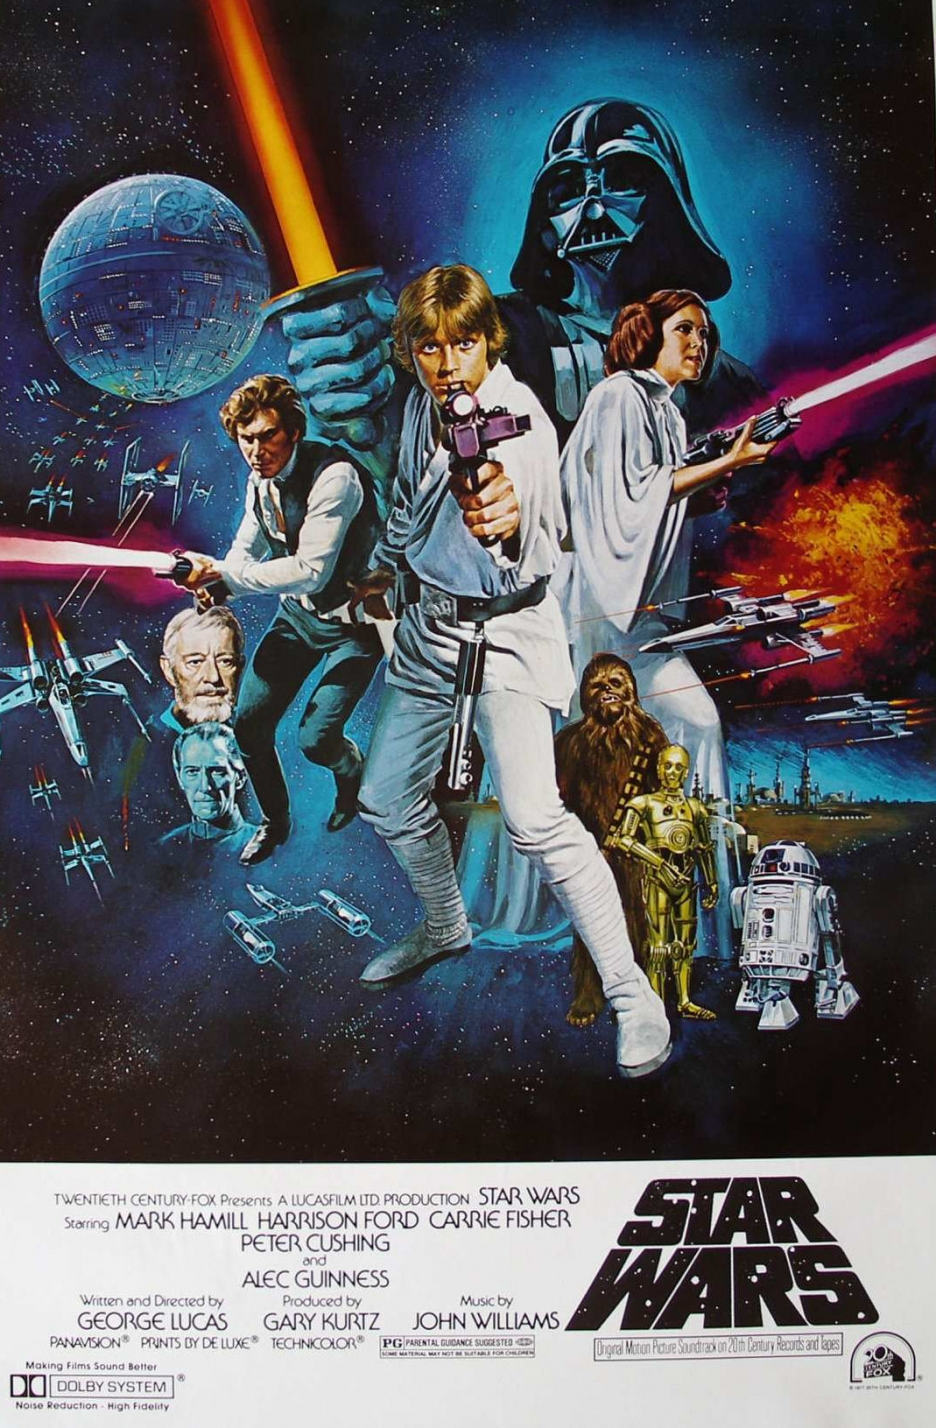 Star_Wars_Episode_IV-A_New_Hope_Theatrical_Release_Poster.jpg